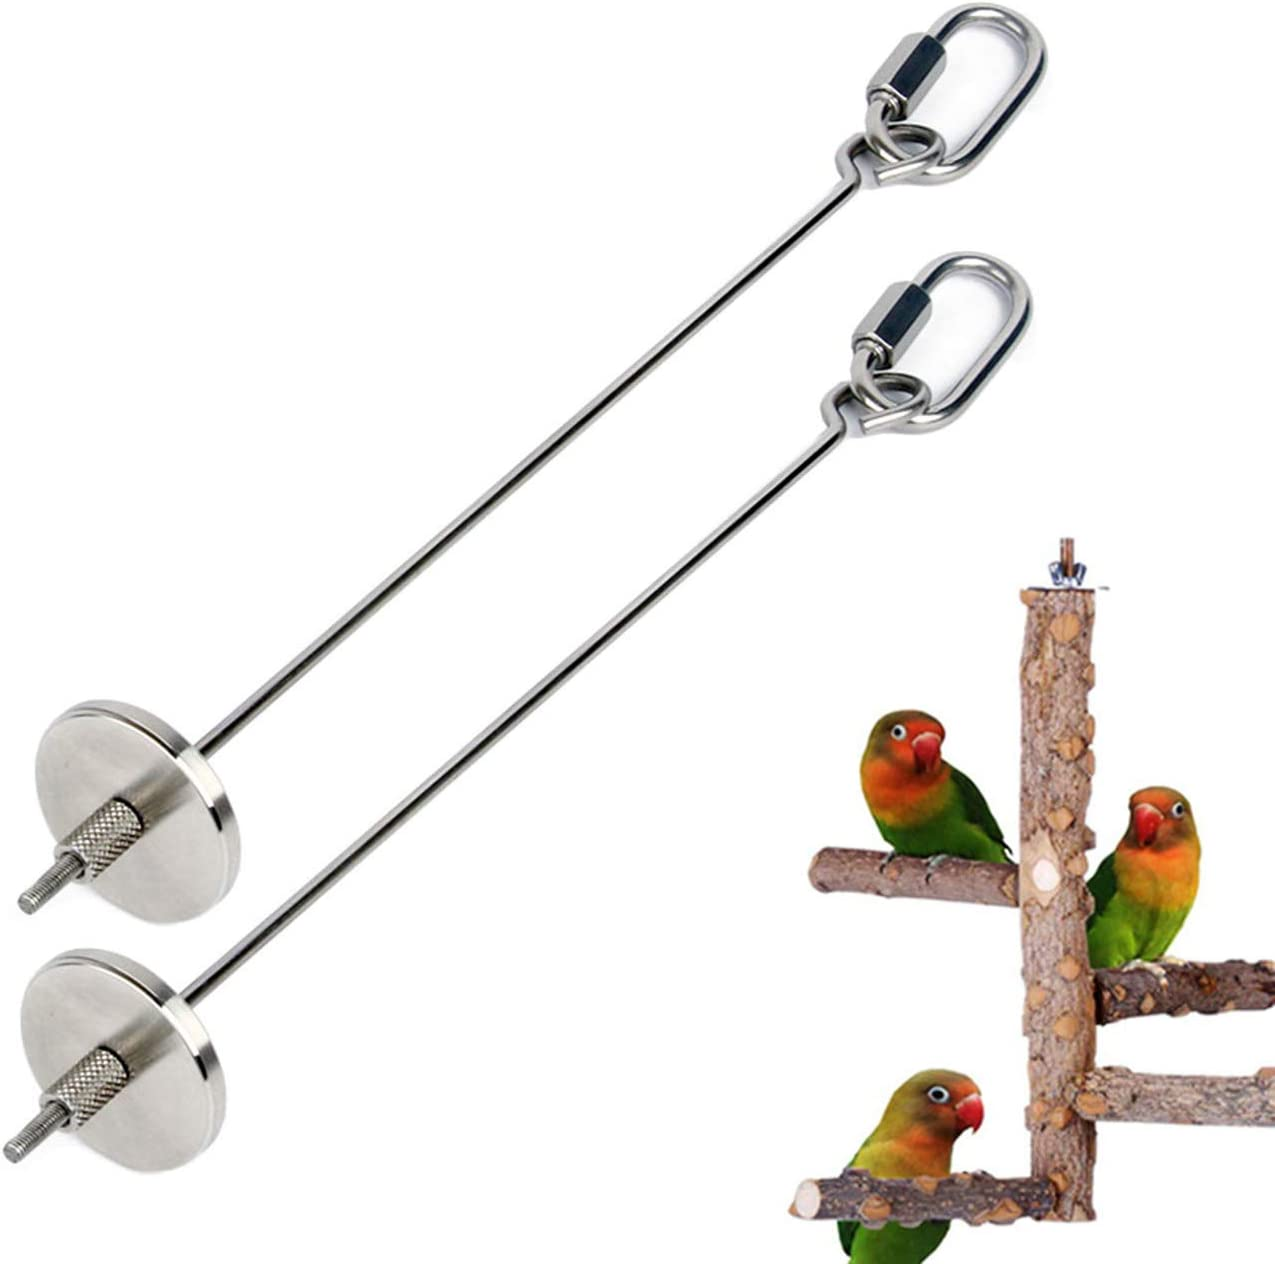 2 Pcs Parrot Bird Rabbit Hutch Cage Fruit Vegetable Food Holder, Stainless Steel Parrot Skewer Foraging Toy, Bird Feeder Toy Animal Treating Tool